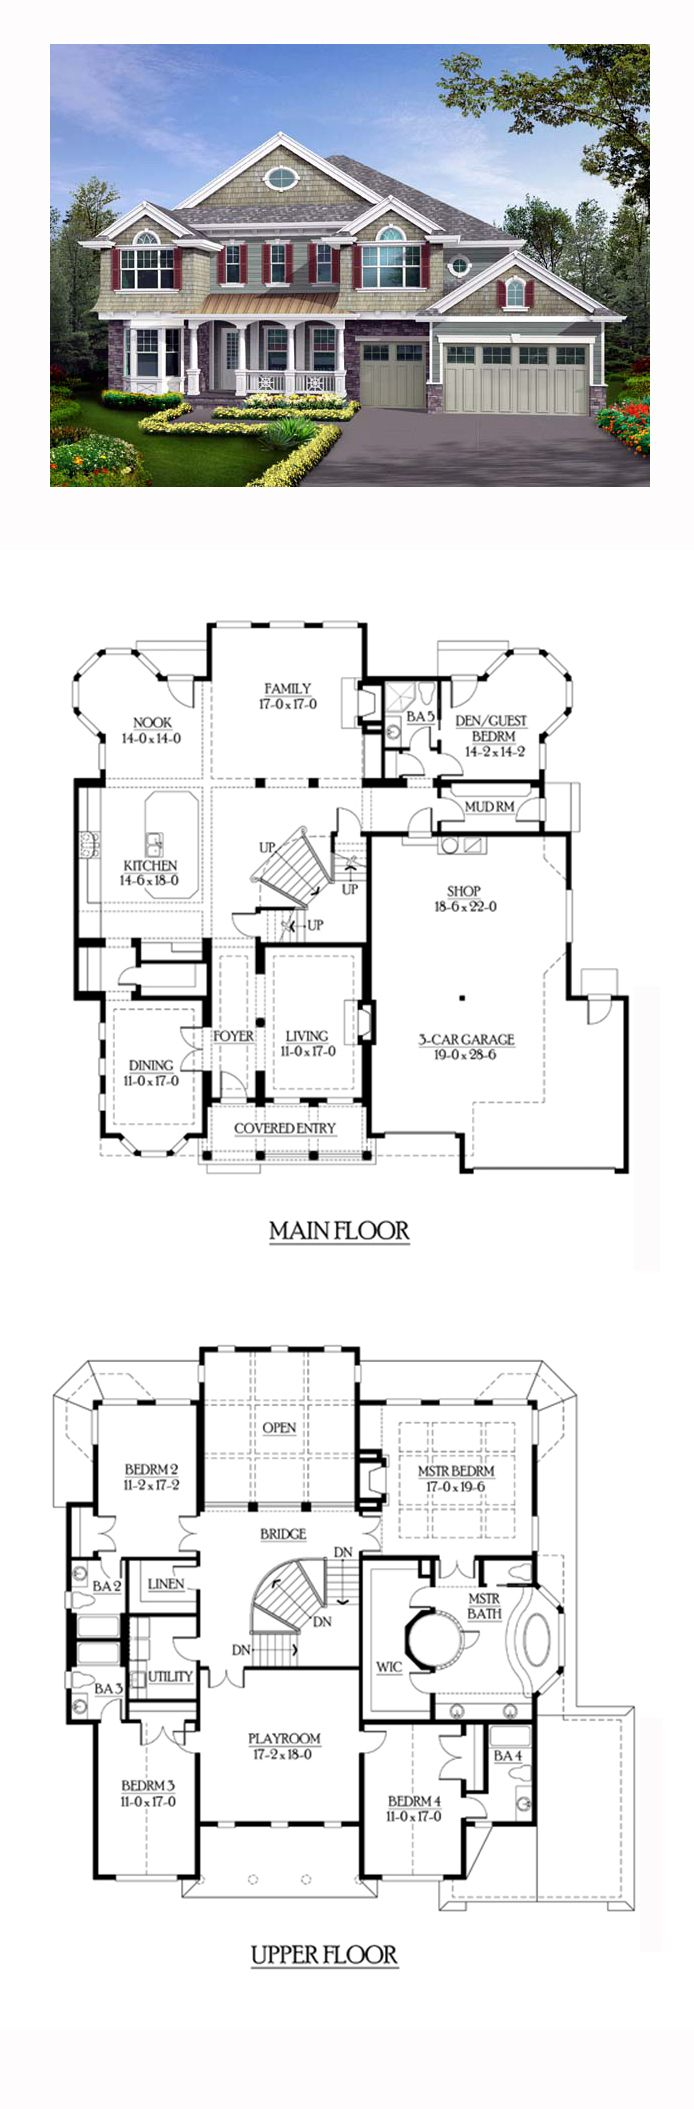 best 25 5 bedroom house ideas on pinterest bathroom law 5 best 25 5 bedroom house ideas on pinterest bathroom law 5 bedroom house plans and hastings house